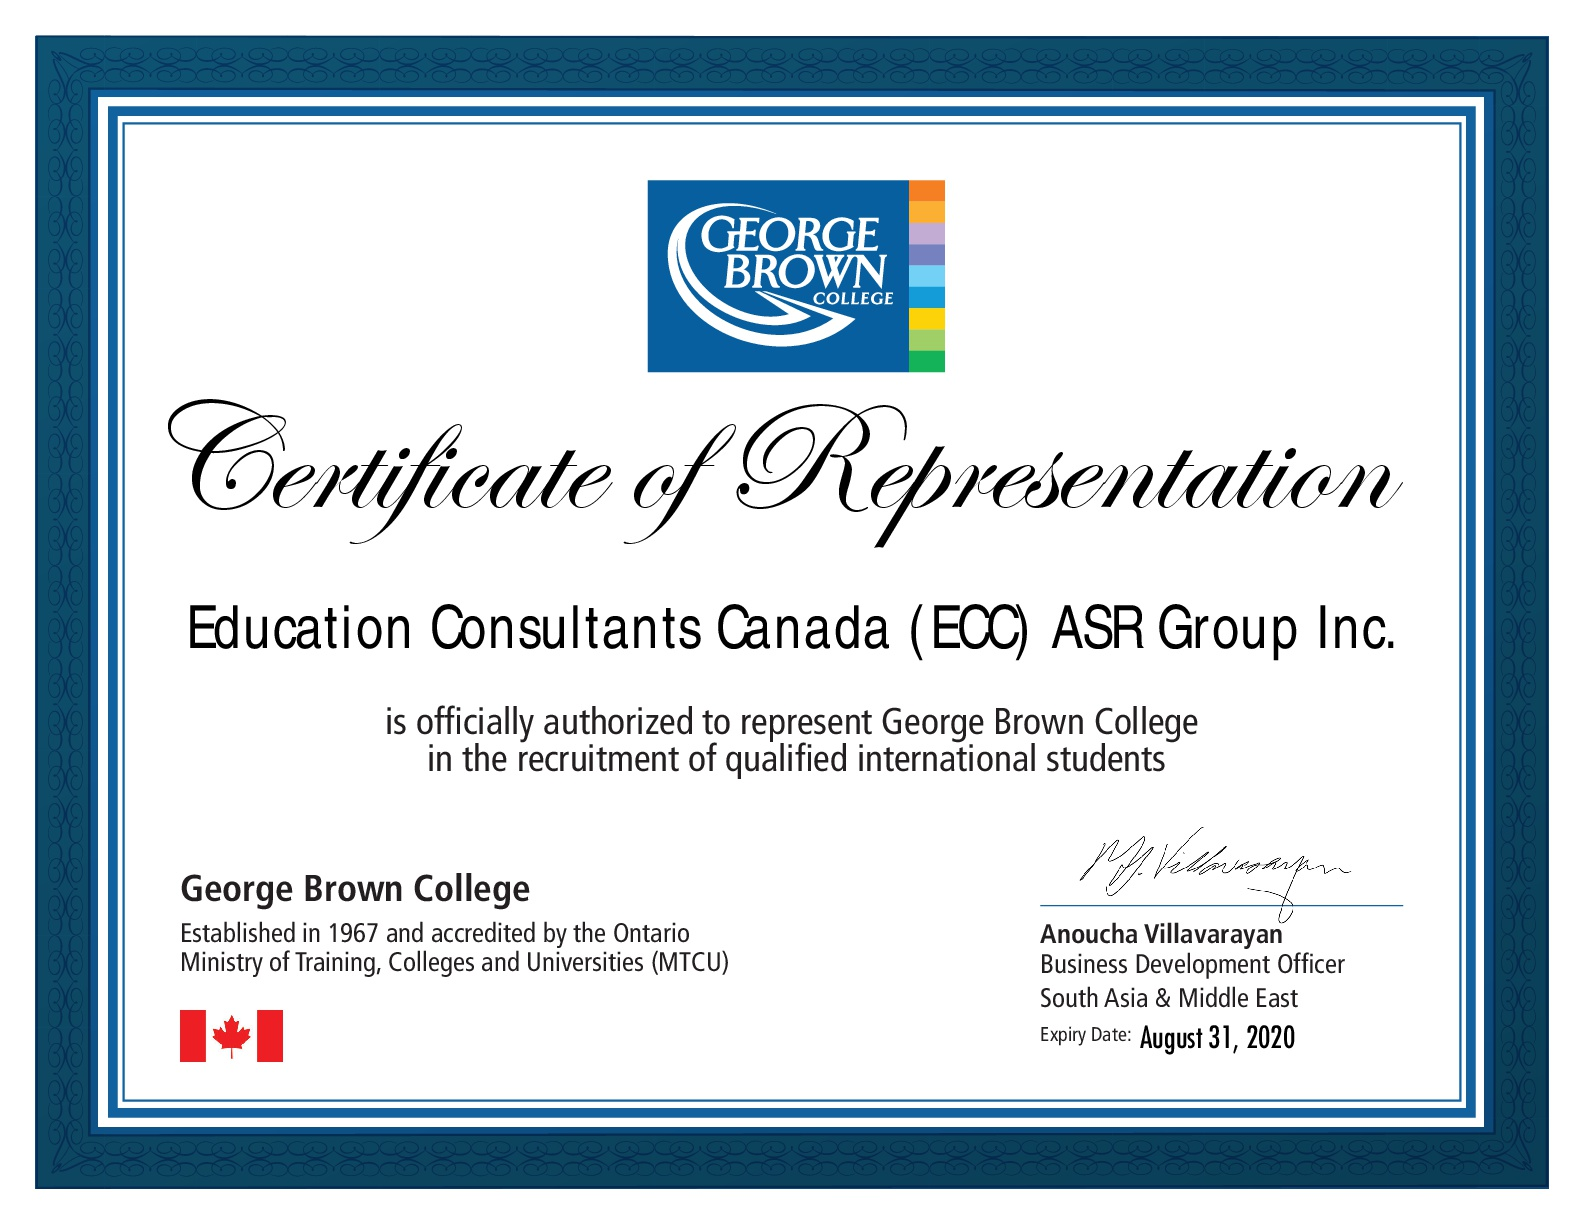 Education Consultants Canada Authorized recruiter of George Brown College for the qualified international students